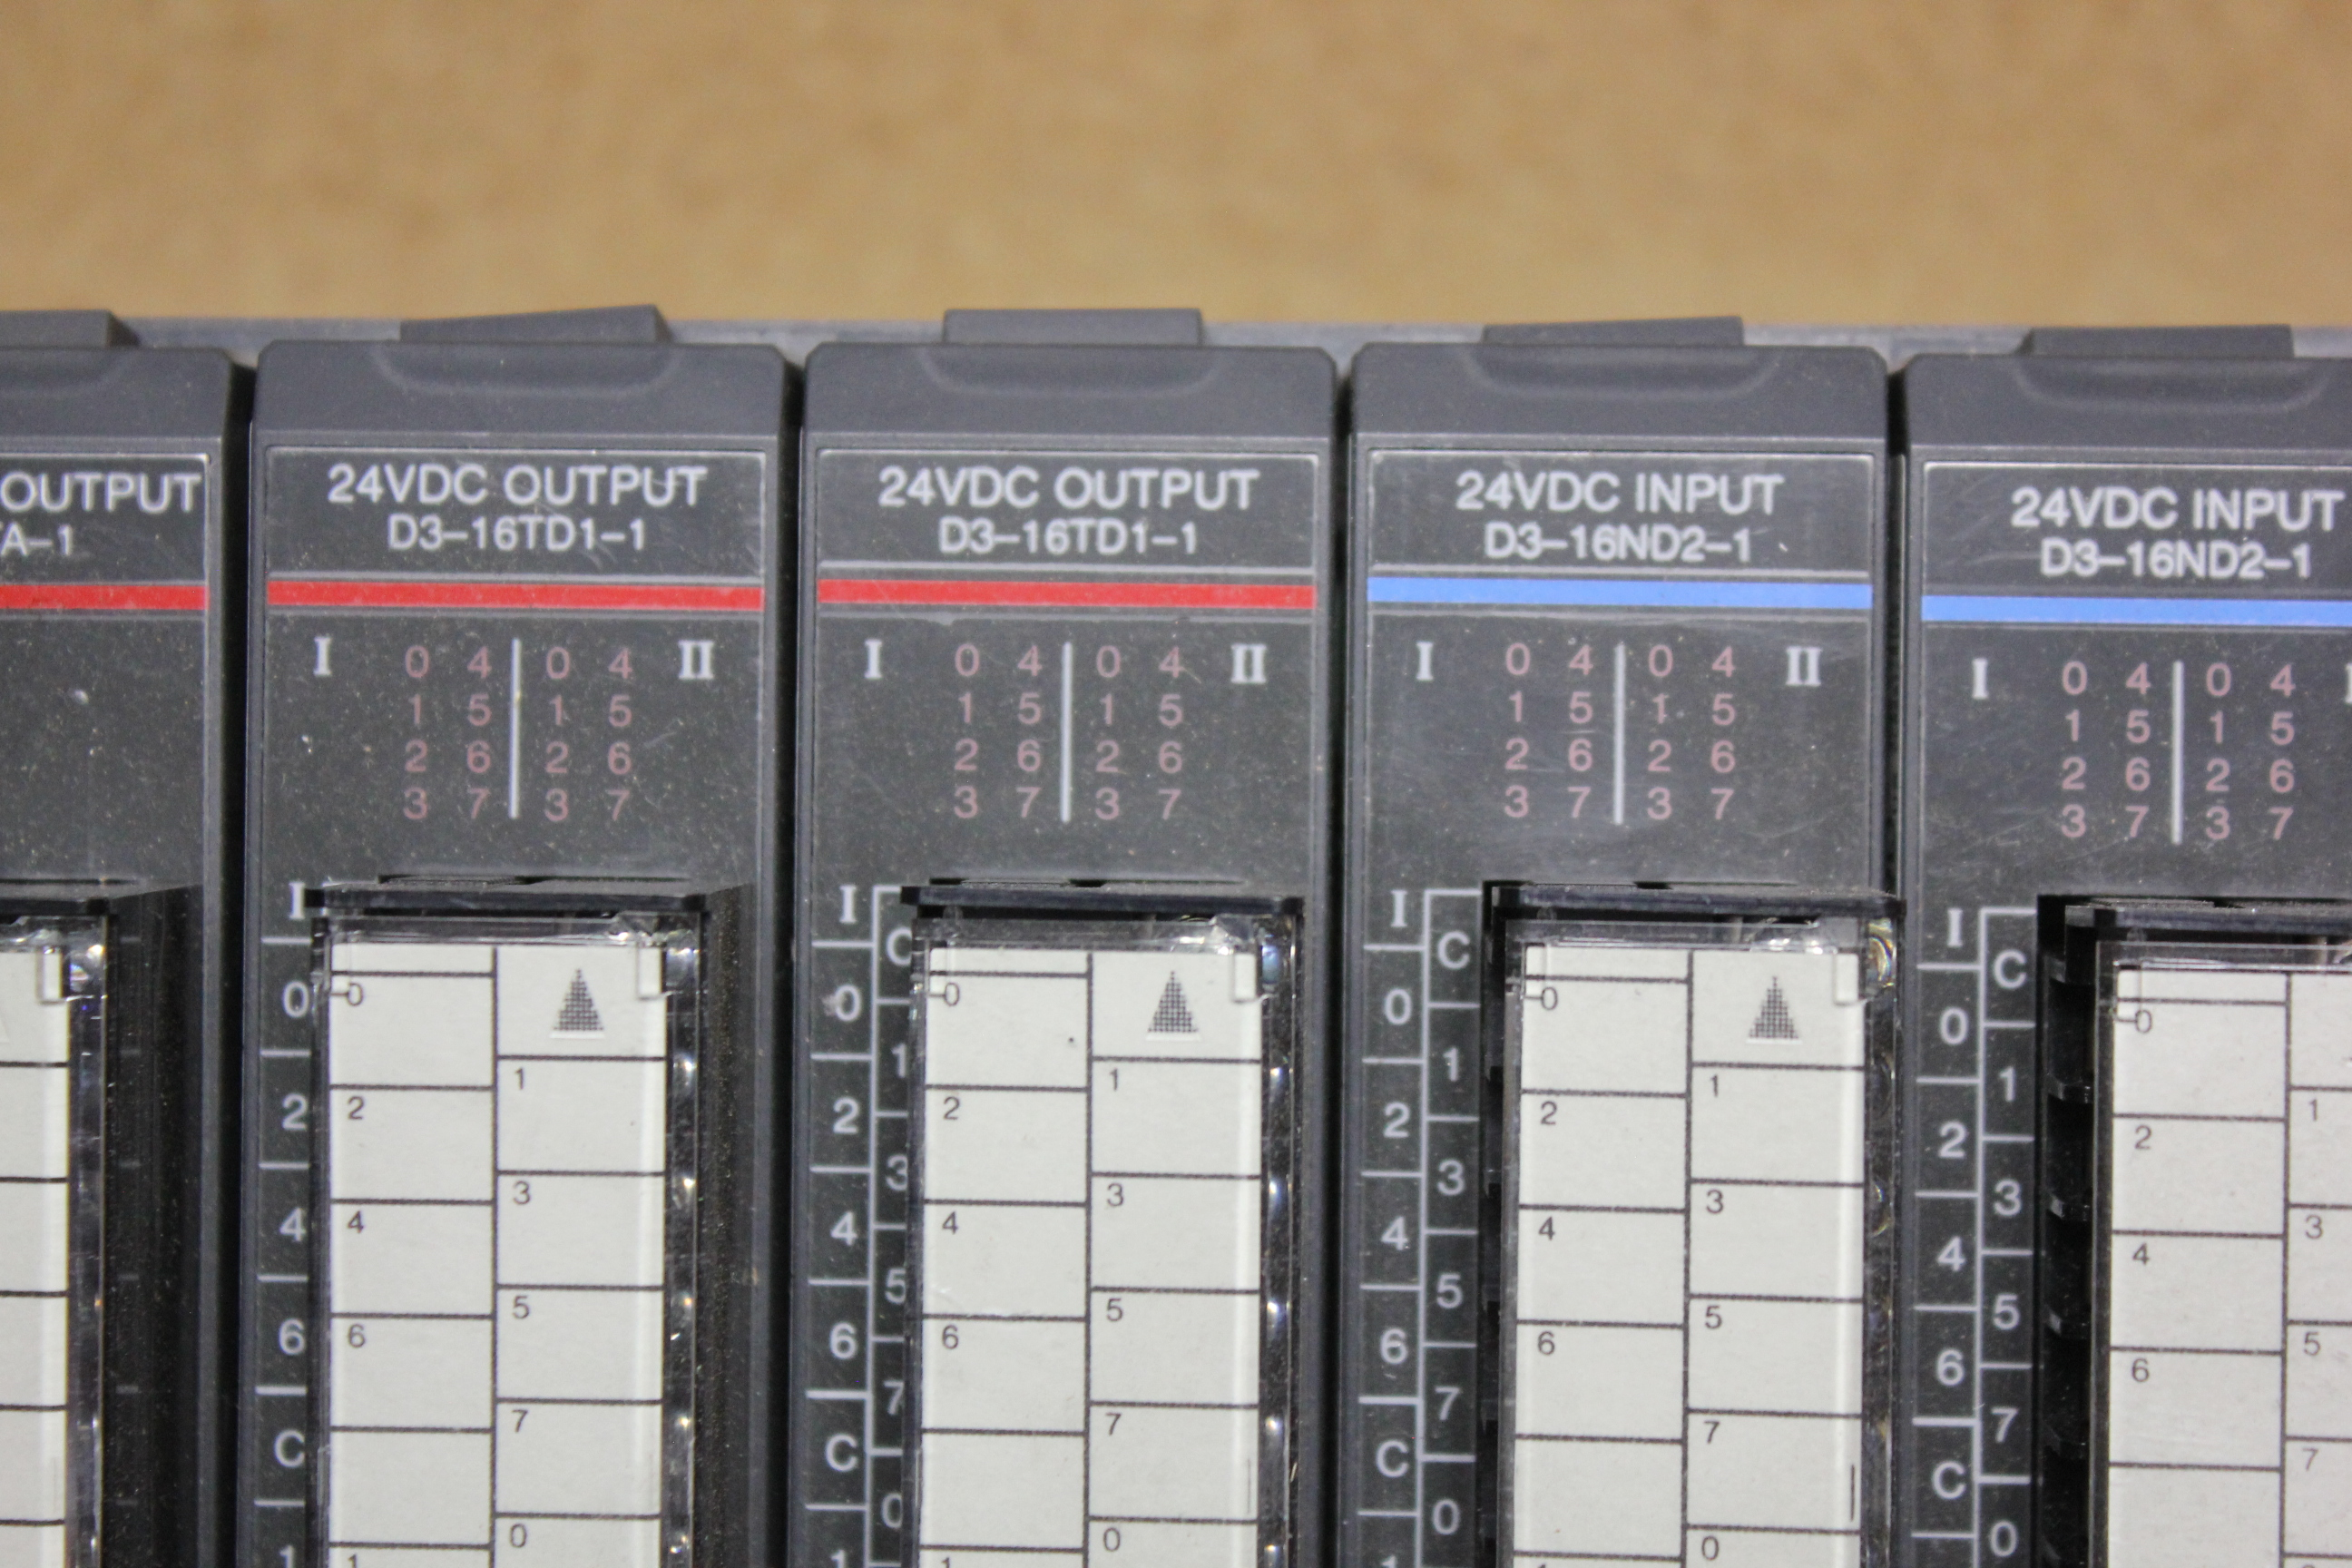 KOYO DIRECT LOGIC 305 PLC CHASSIS WITH 10 MODULES - Image 5 of 8